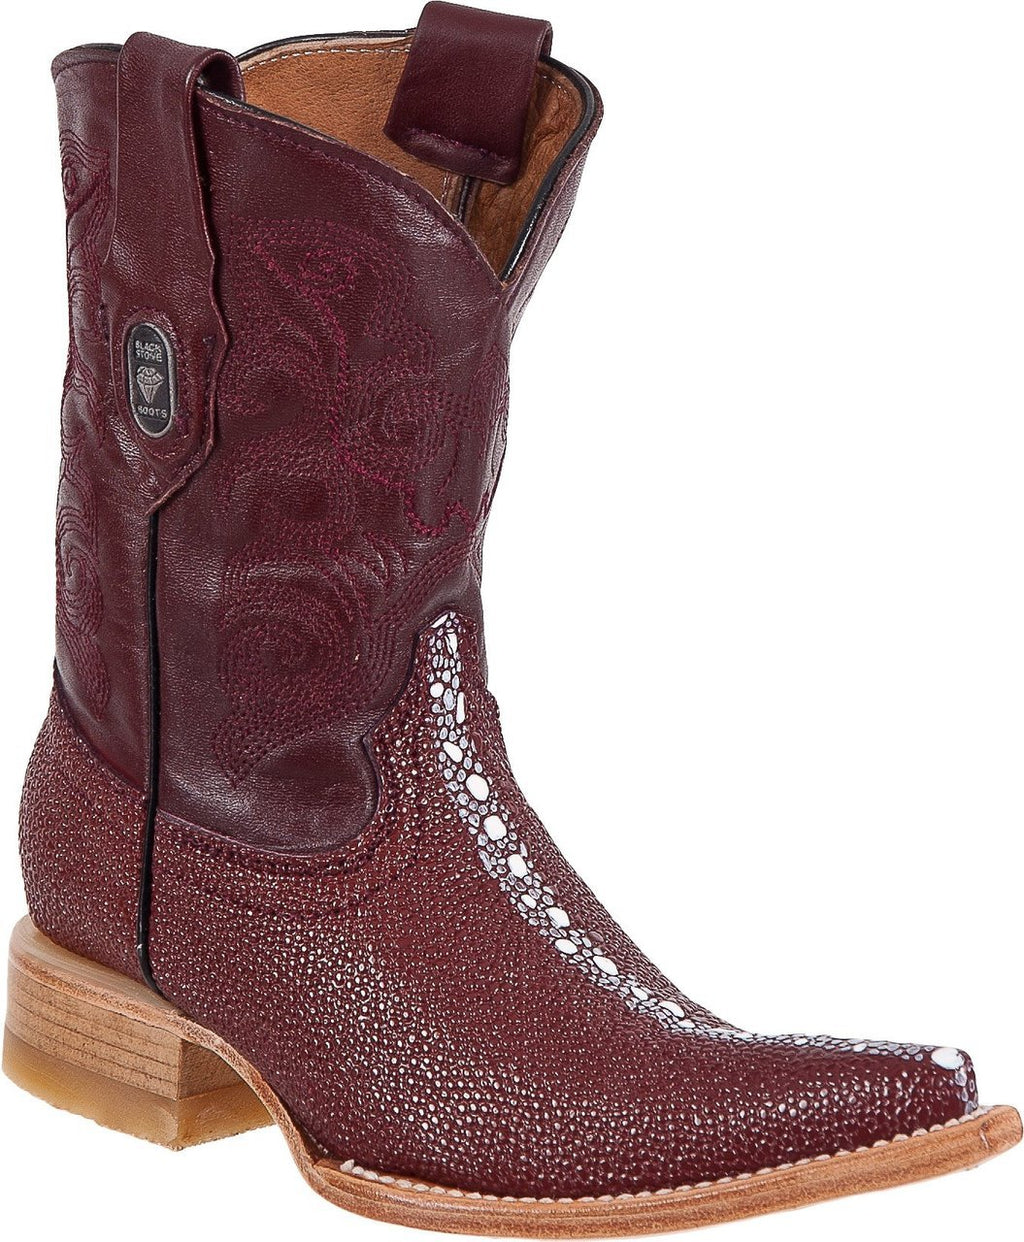 BLACK STONE Kids' Wine Stingray Print Boots - Ch Toe